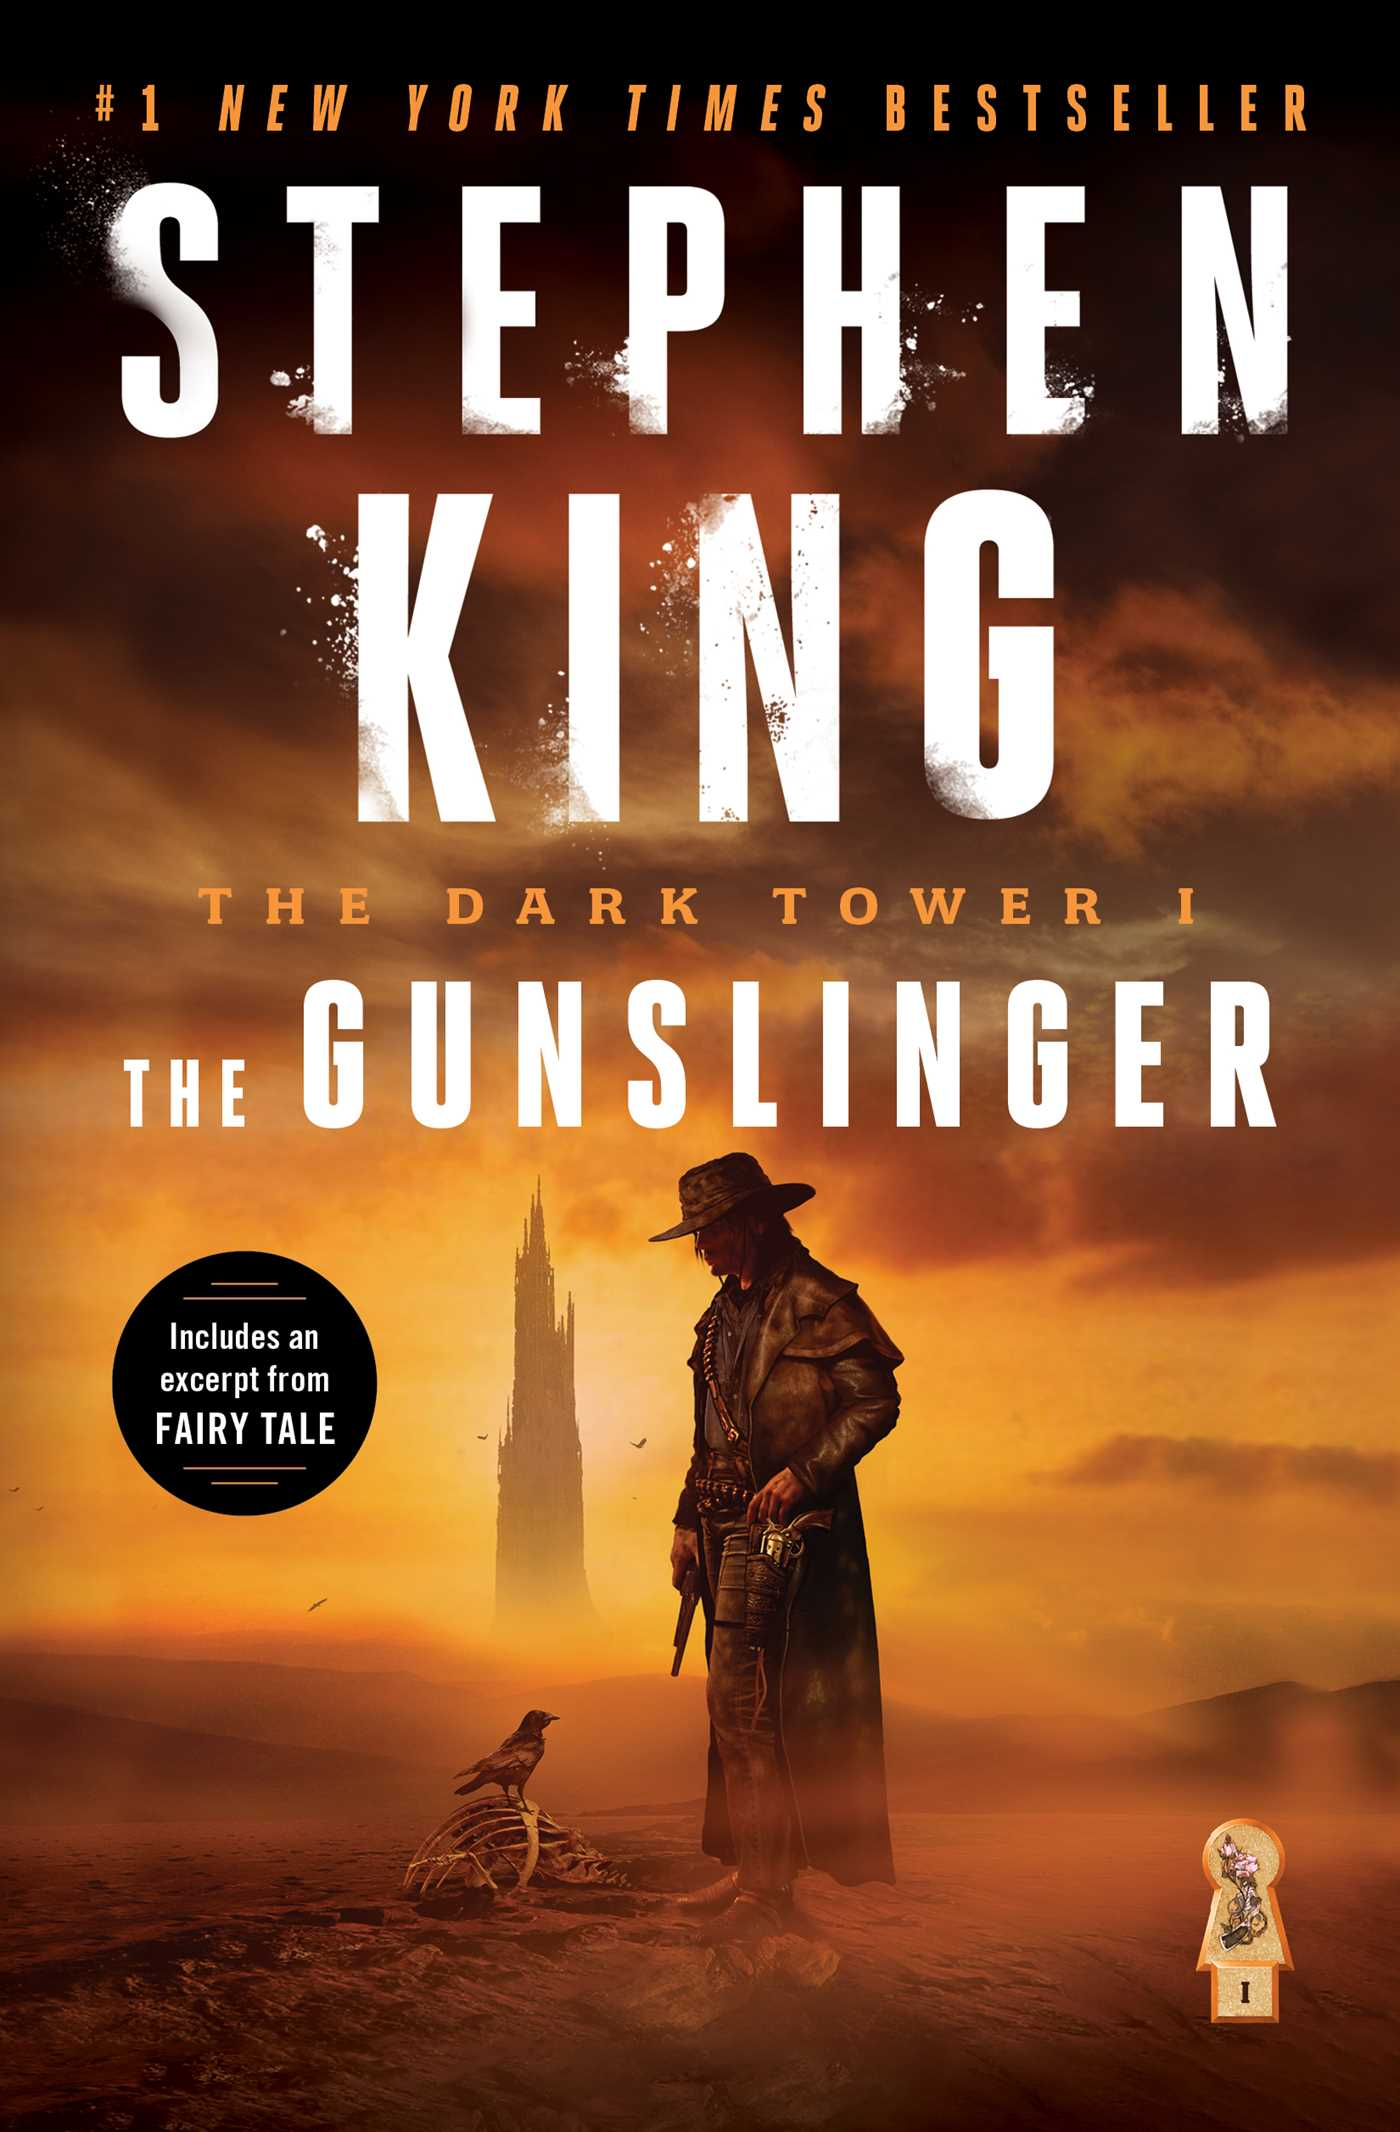 The dark tower i 9781501141386 hr